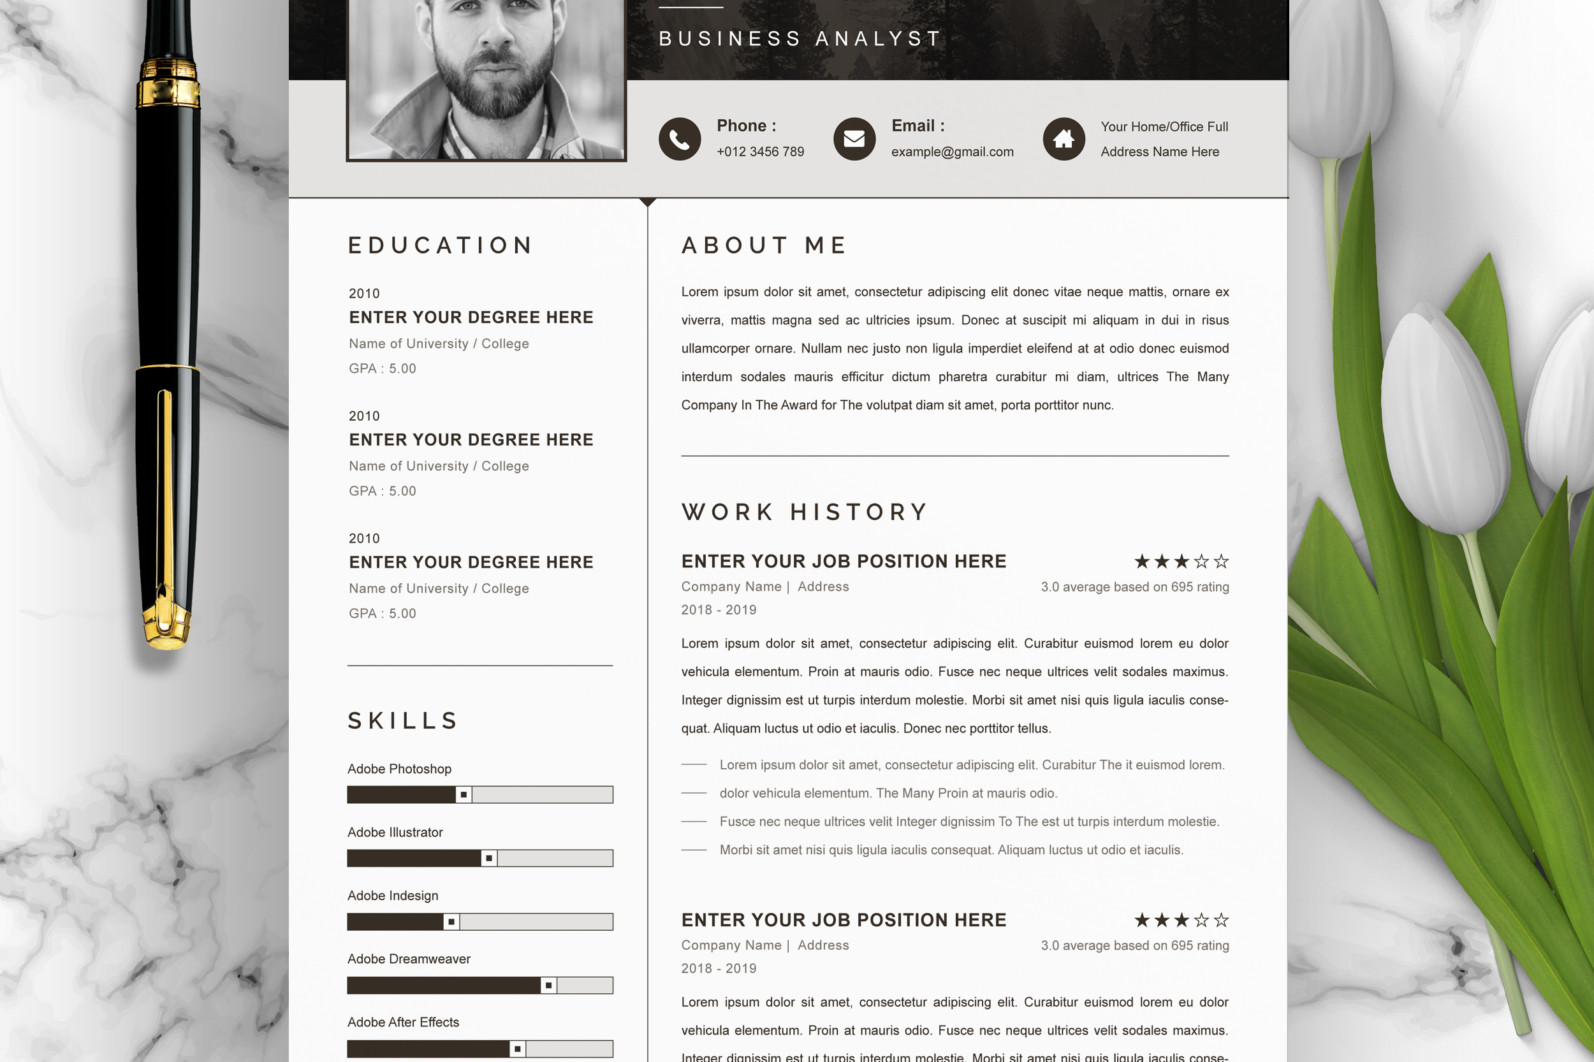 Professional Resume, Instant Download - 01 Clean Professional Creative and Modern Resume CV Curriculum Vitae Design Template MS Word Apple Pages PSD Free Download 9 -